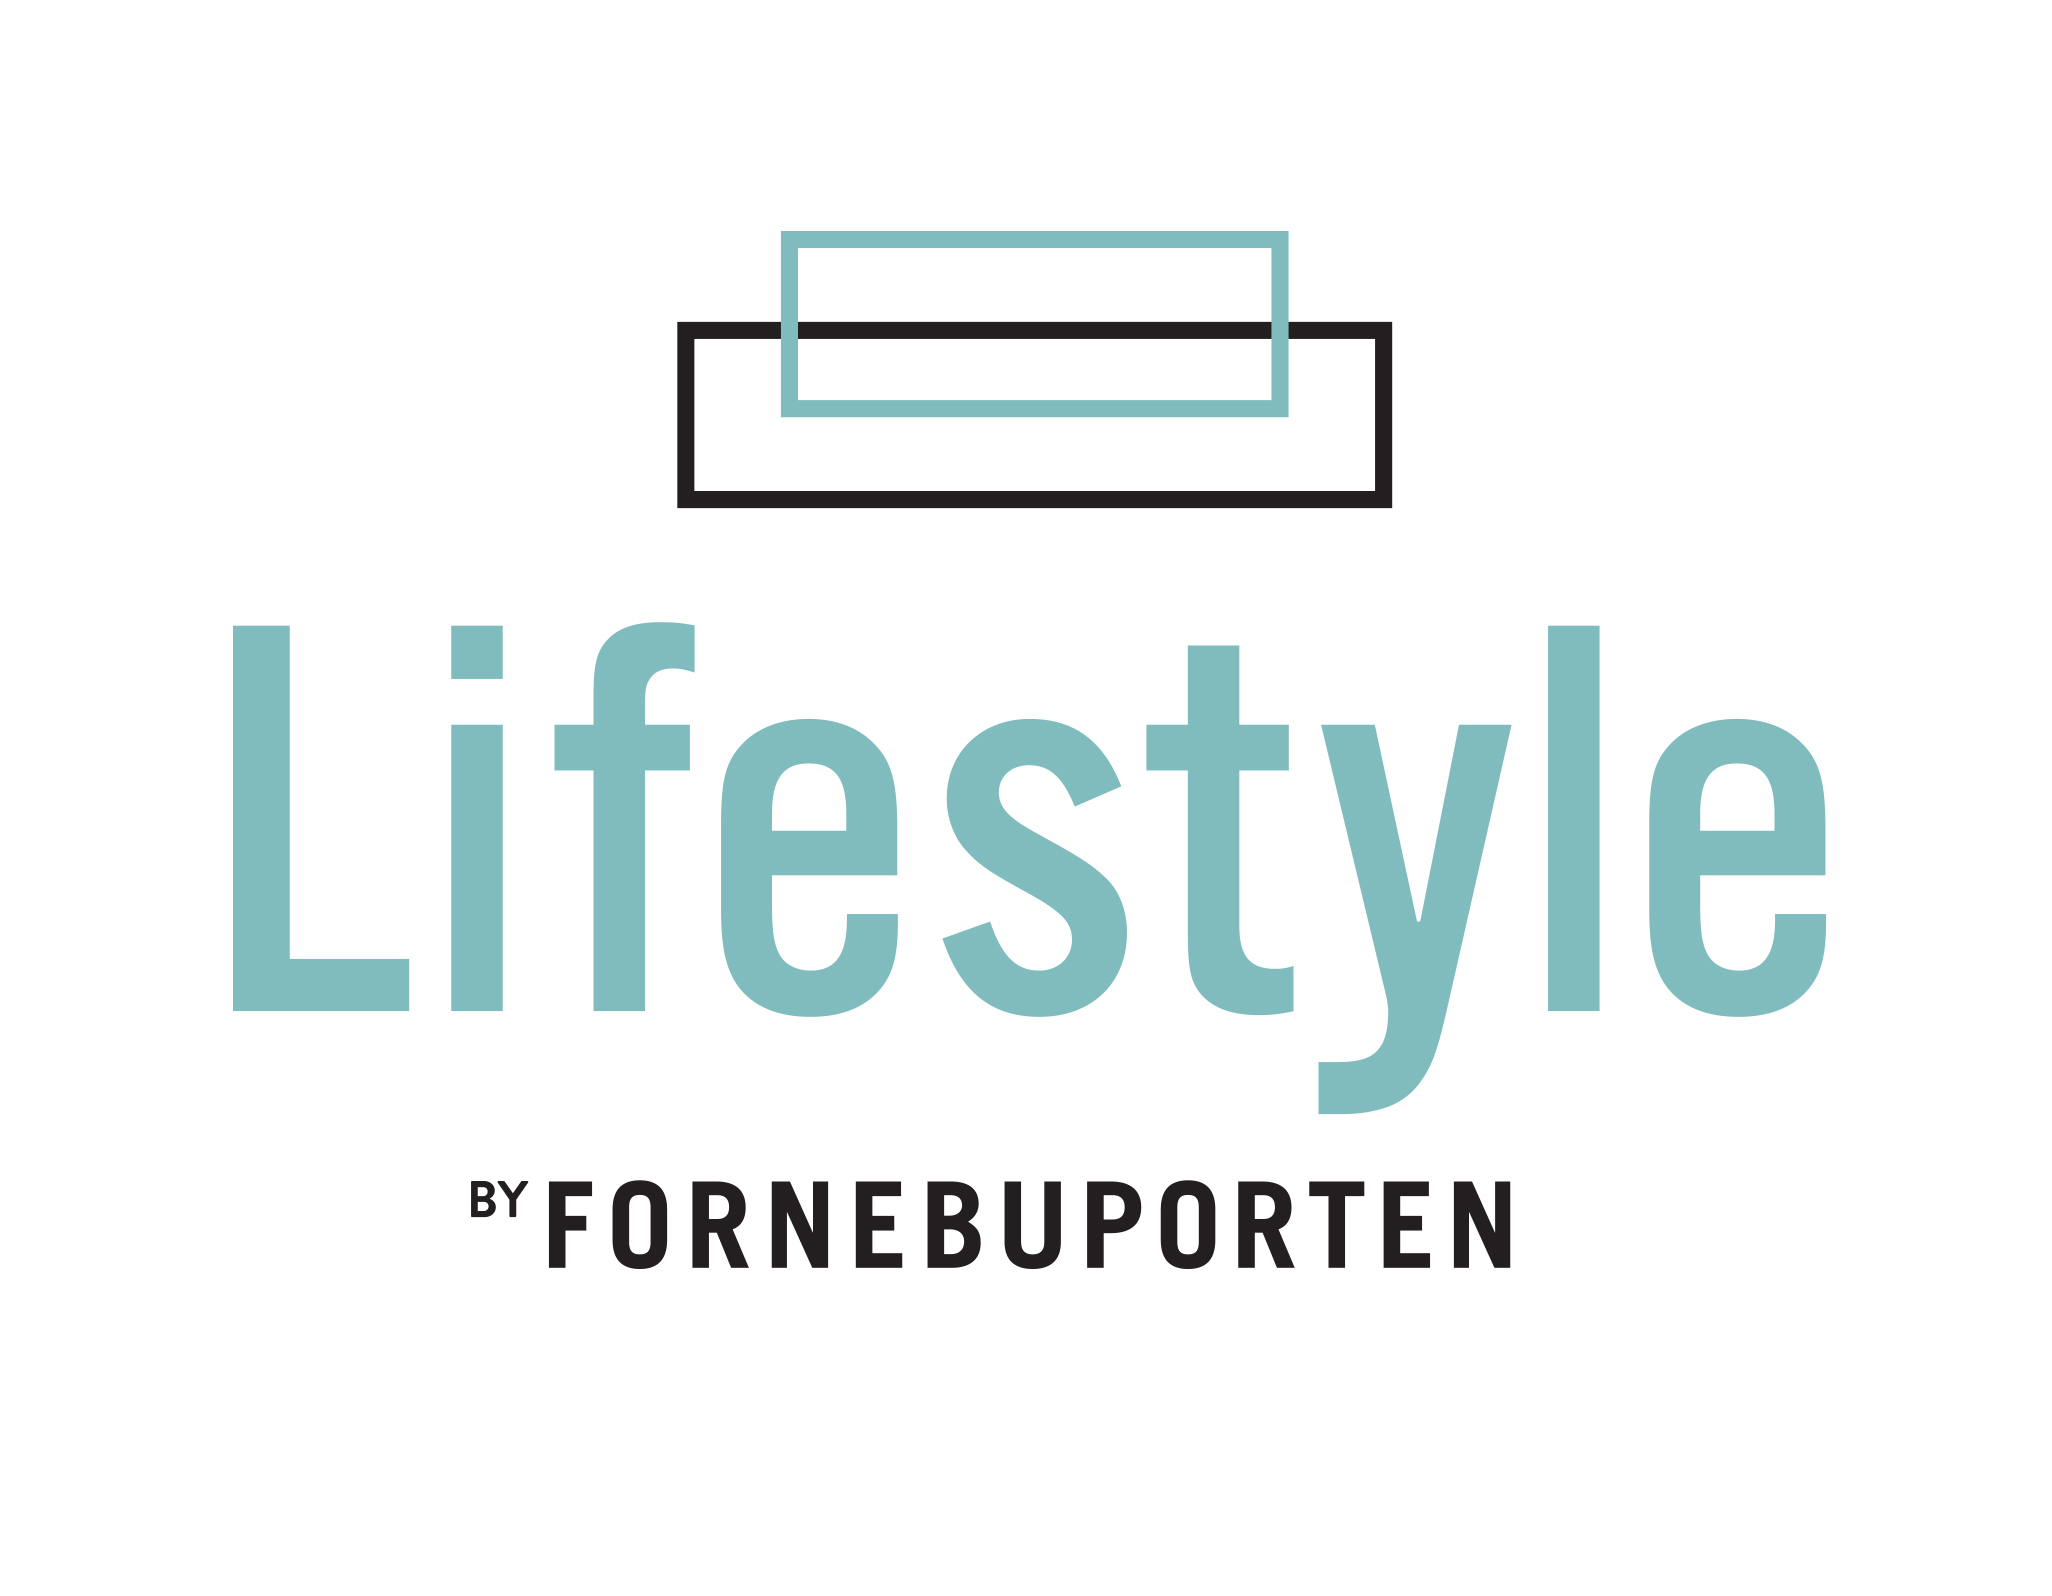 Lifestyle by Fornebuporten